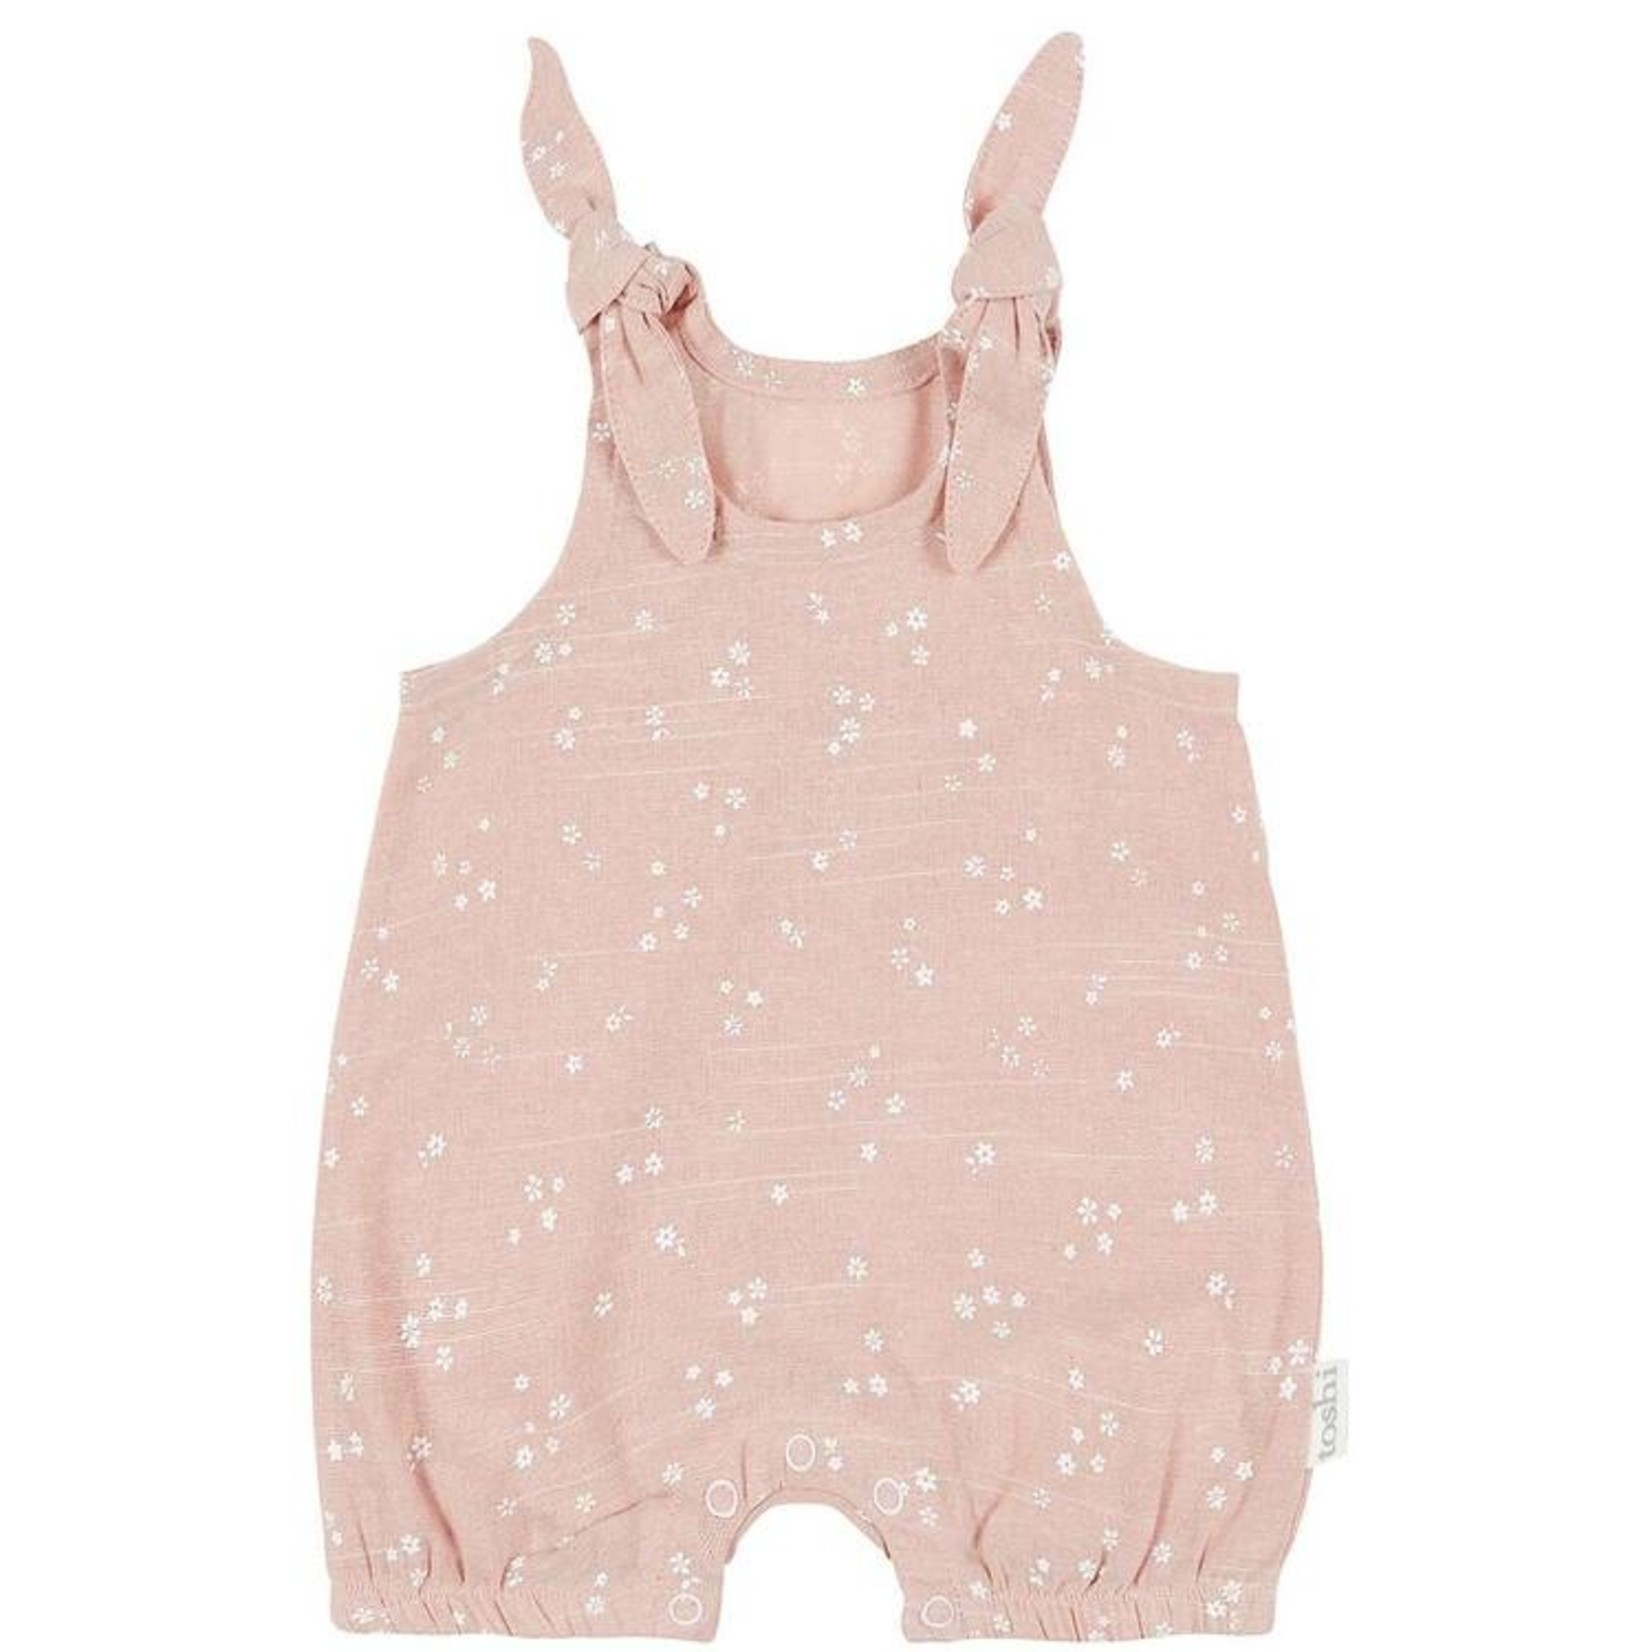 Toshi Toshi Baby Romper - Misty Rose